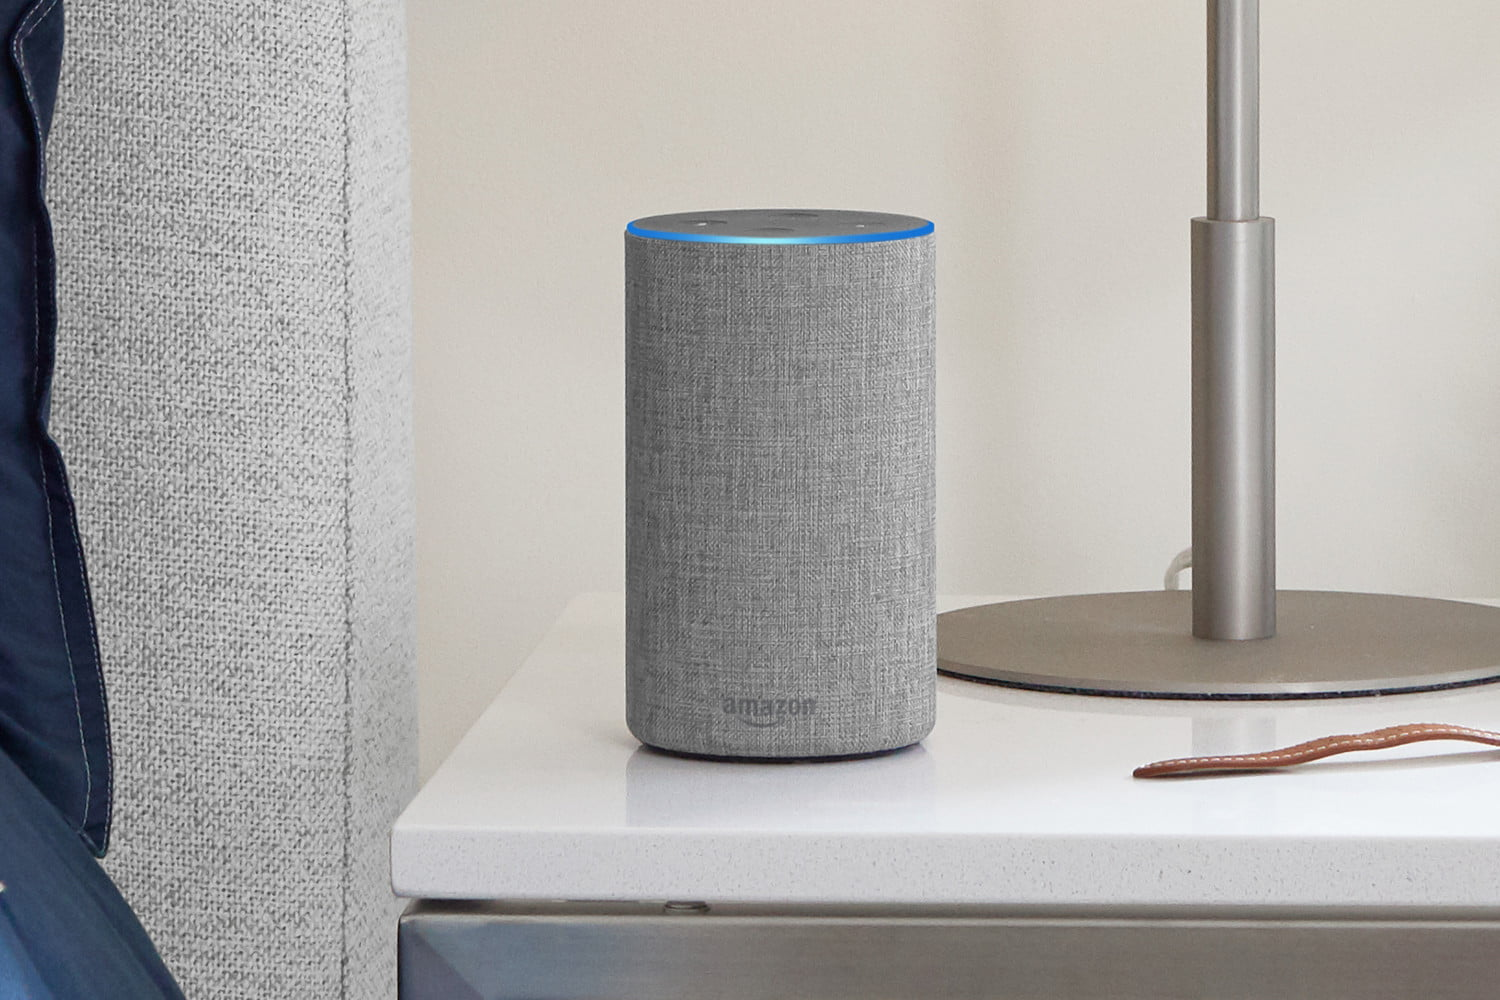 What Is Alexa, and What Can Amazon's Virtual Assistant Do